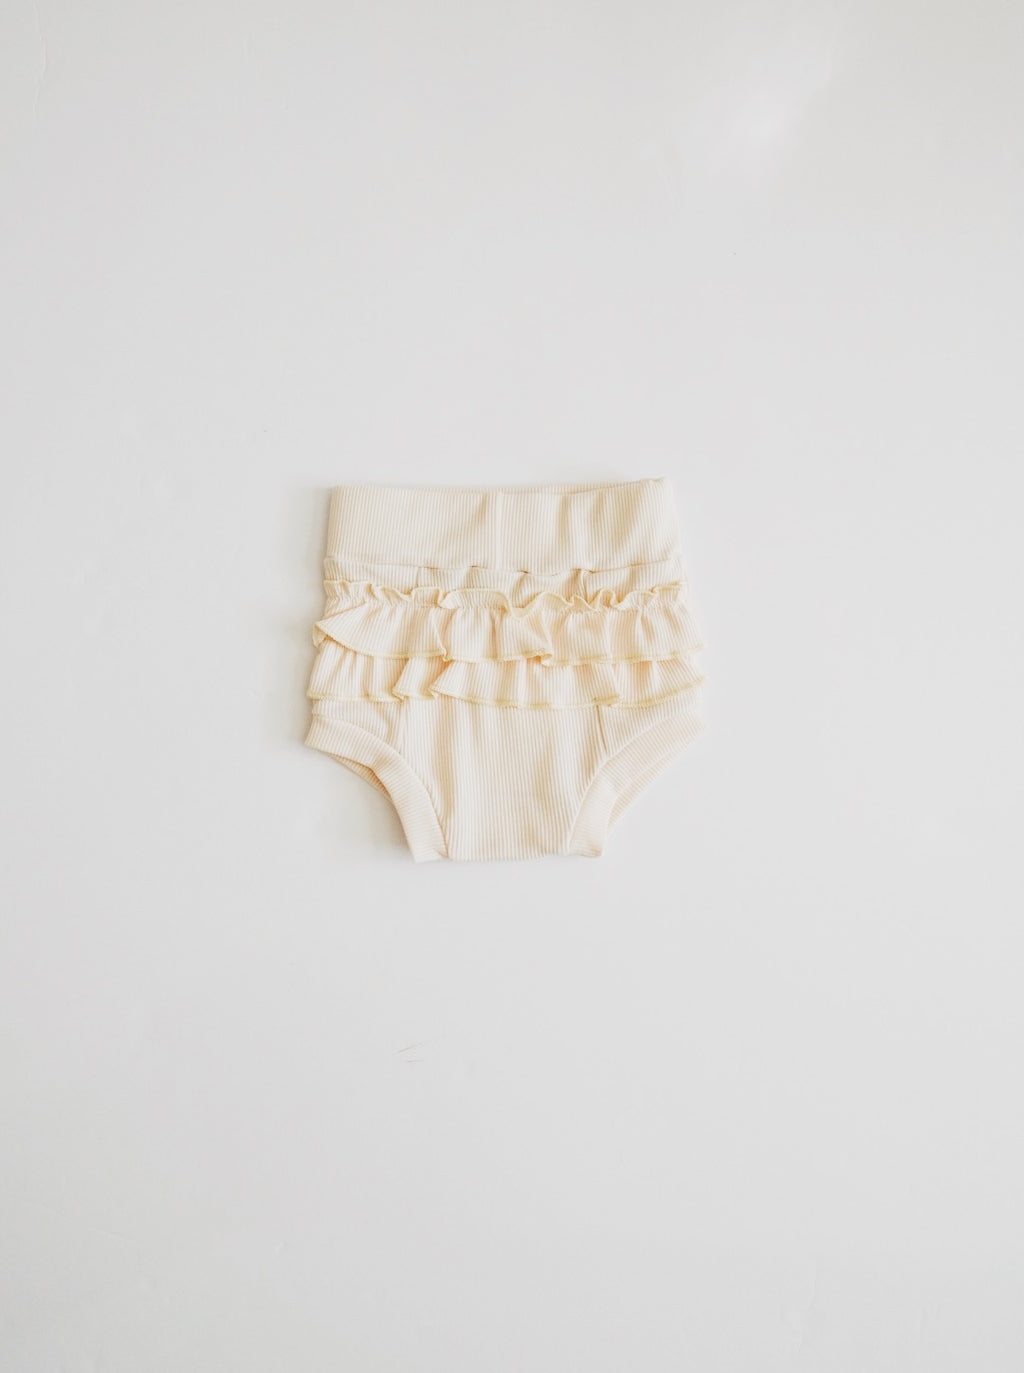 Ruffle Bloomer - Cream